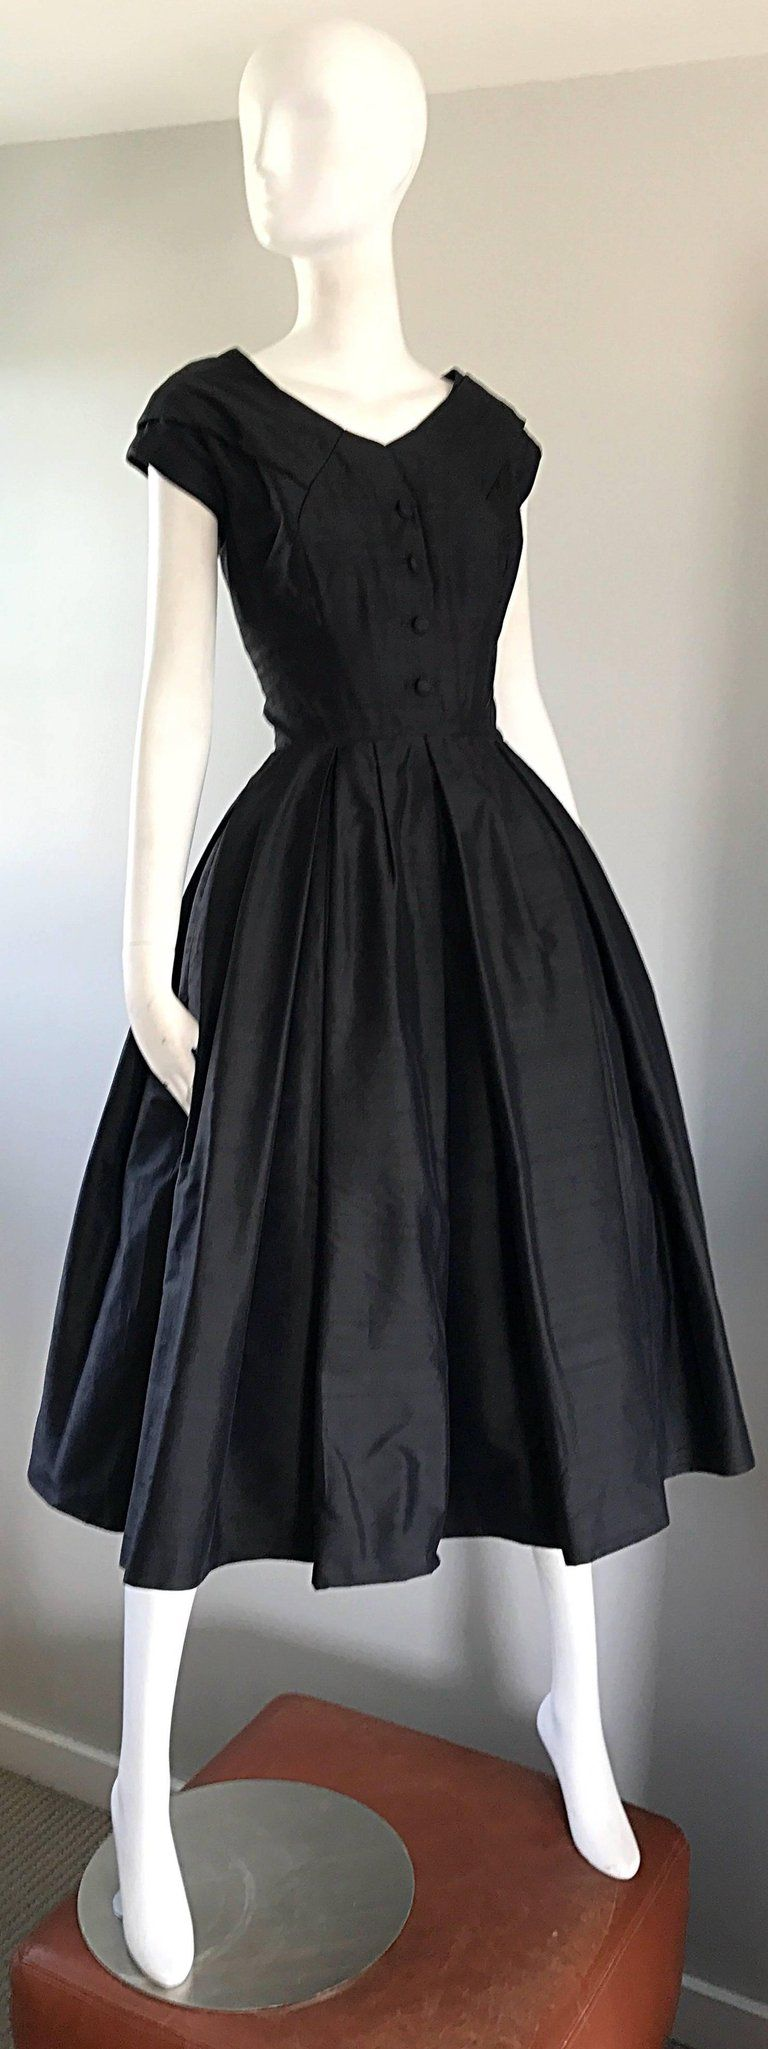 Rare 1950s Christian Dior Haute Couture New Look Vintage Black Silk Dress Christian Dior Dress Vintage Dresses 50s Retro Vintage Dresses [ 2049 x 768 Pixel ]